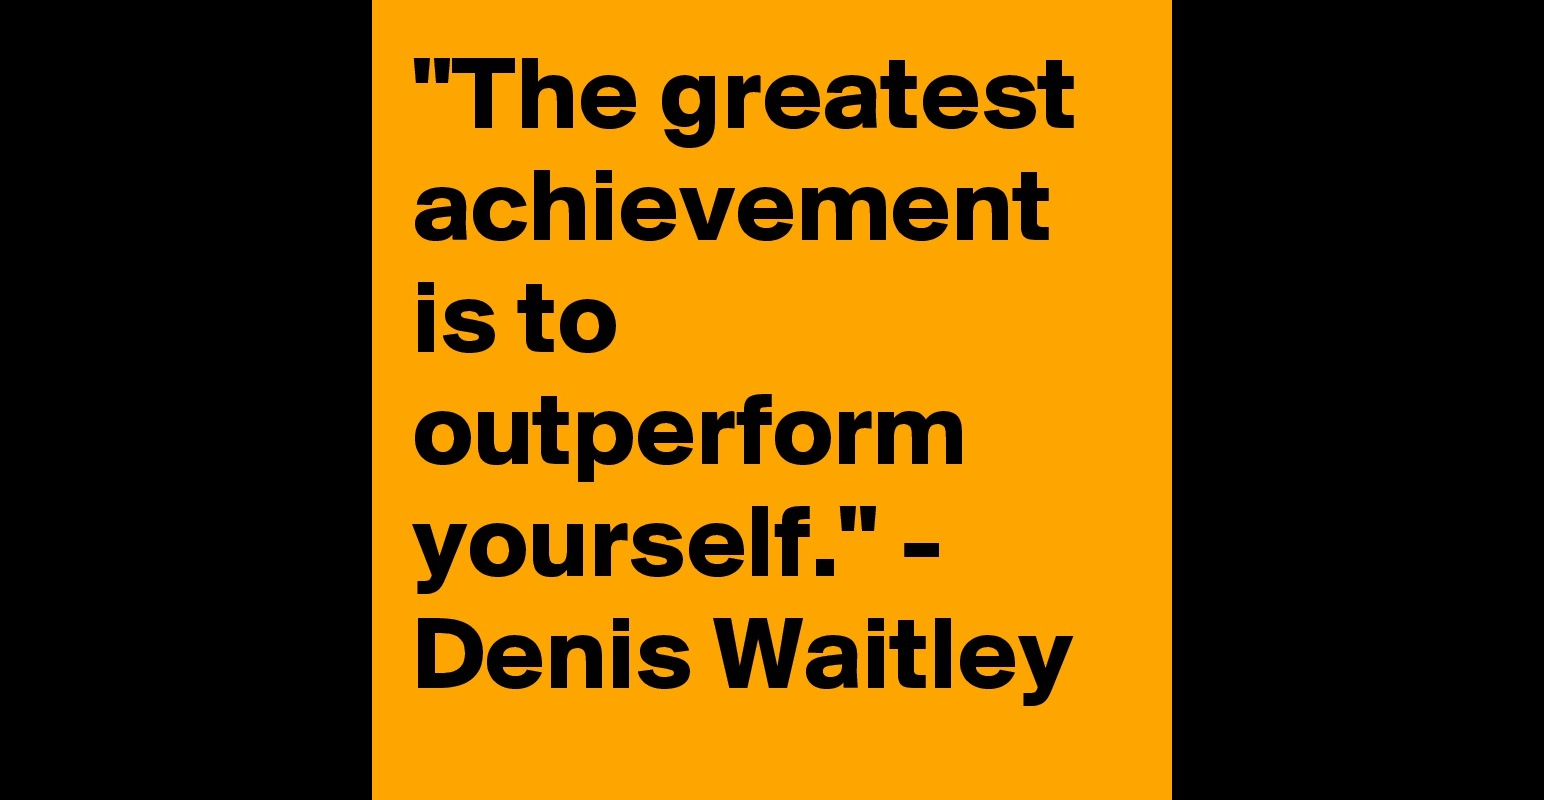 the greatest achievement is to outperform yourself denis the greatest achievement is to outperform yourself denis waitley post by greatestquotes on boldomatic